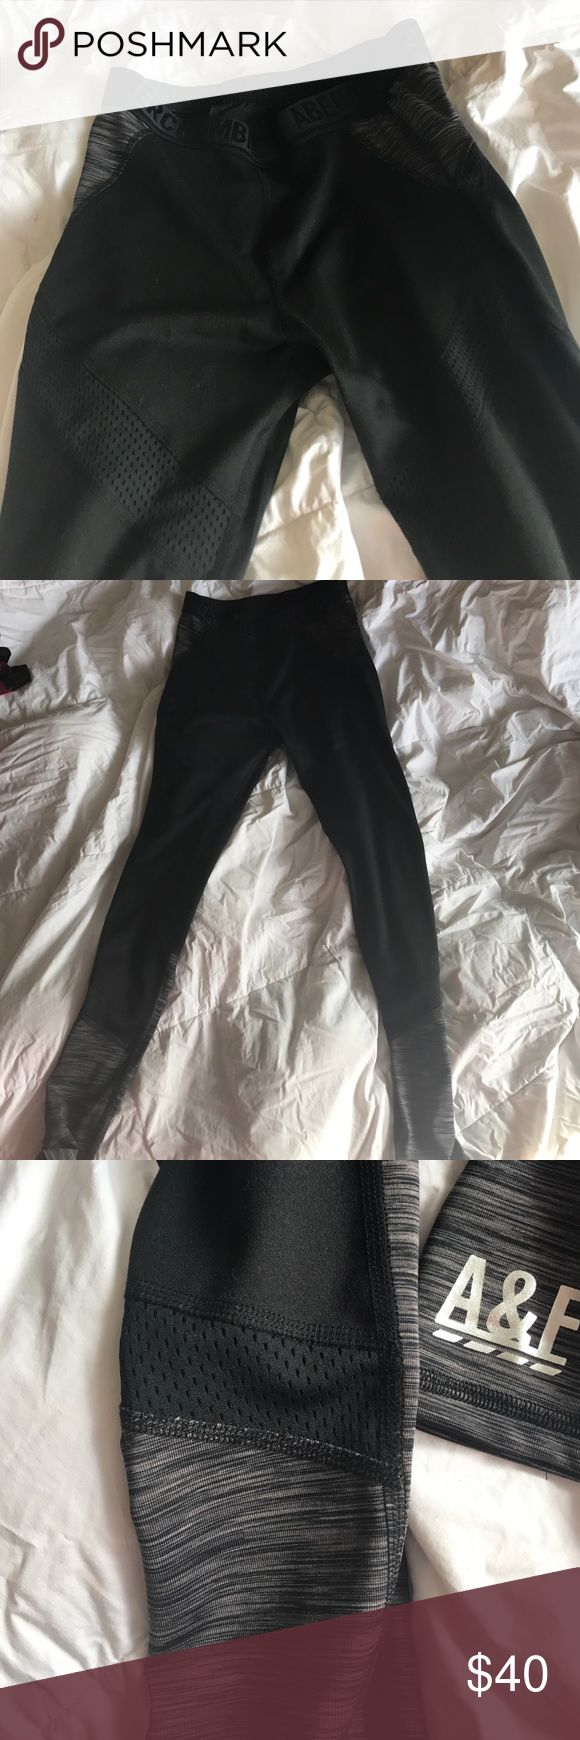 Abercrombie and fitch active mesh leggings Active leggings, mesh details, zipper pocket on back, banded. Never worn. Pants Leggings